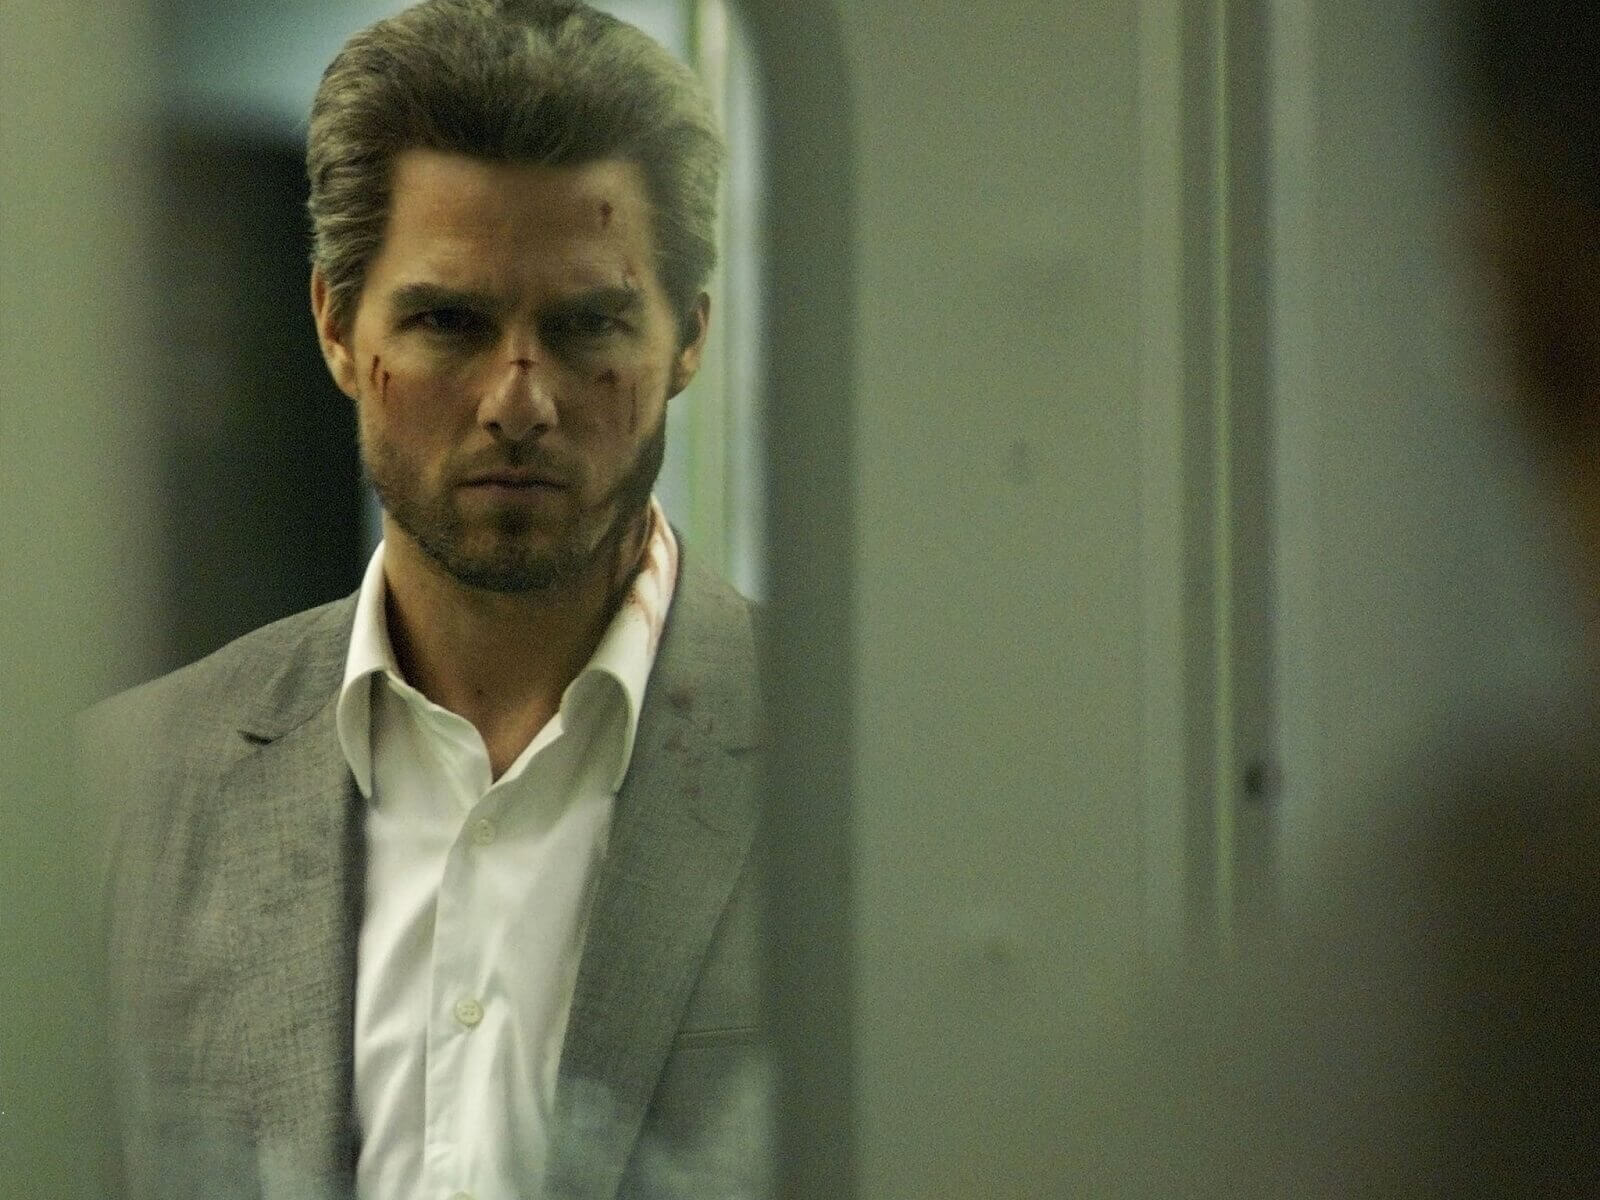 Collateral - Far from being a generic Tom Cruise hitman movie